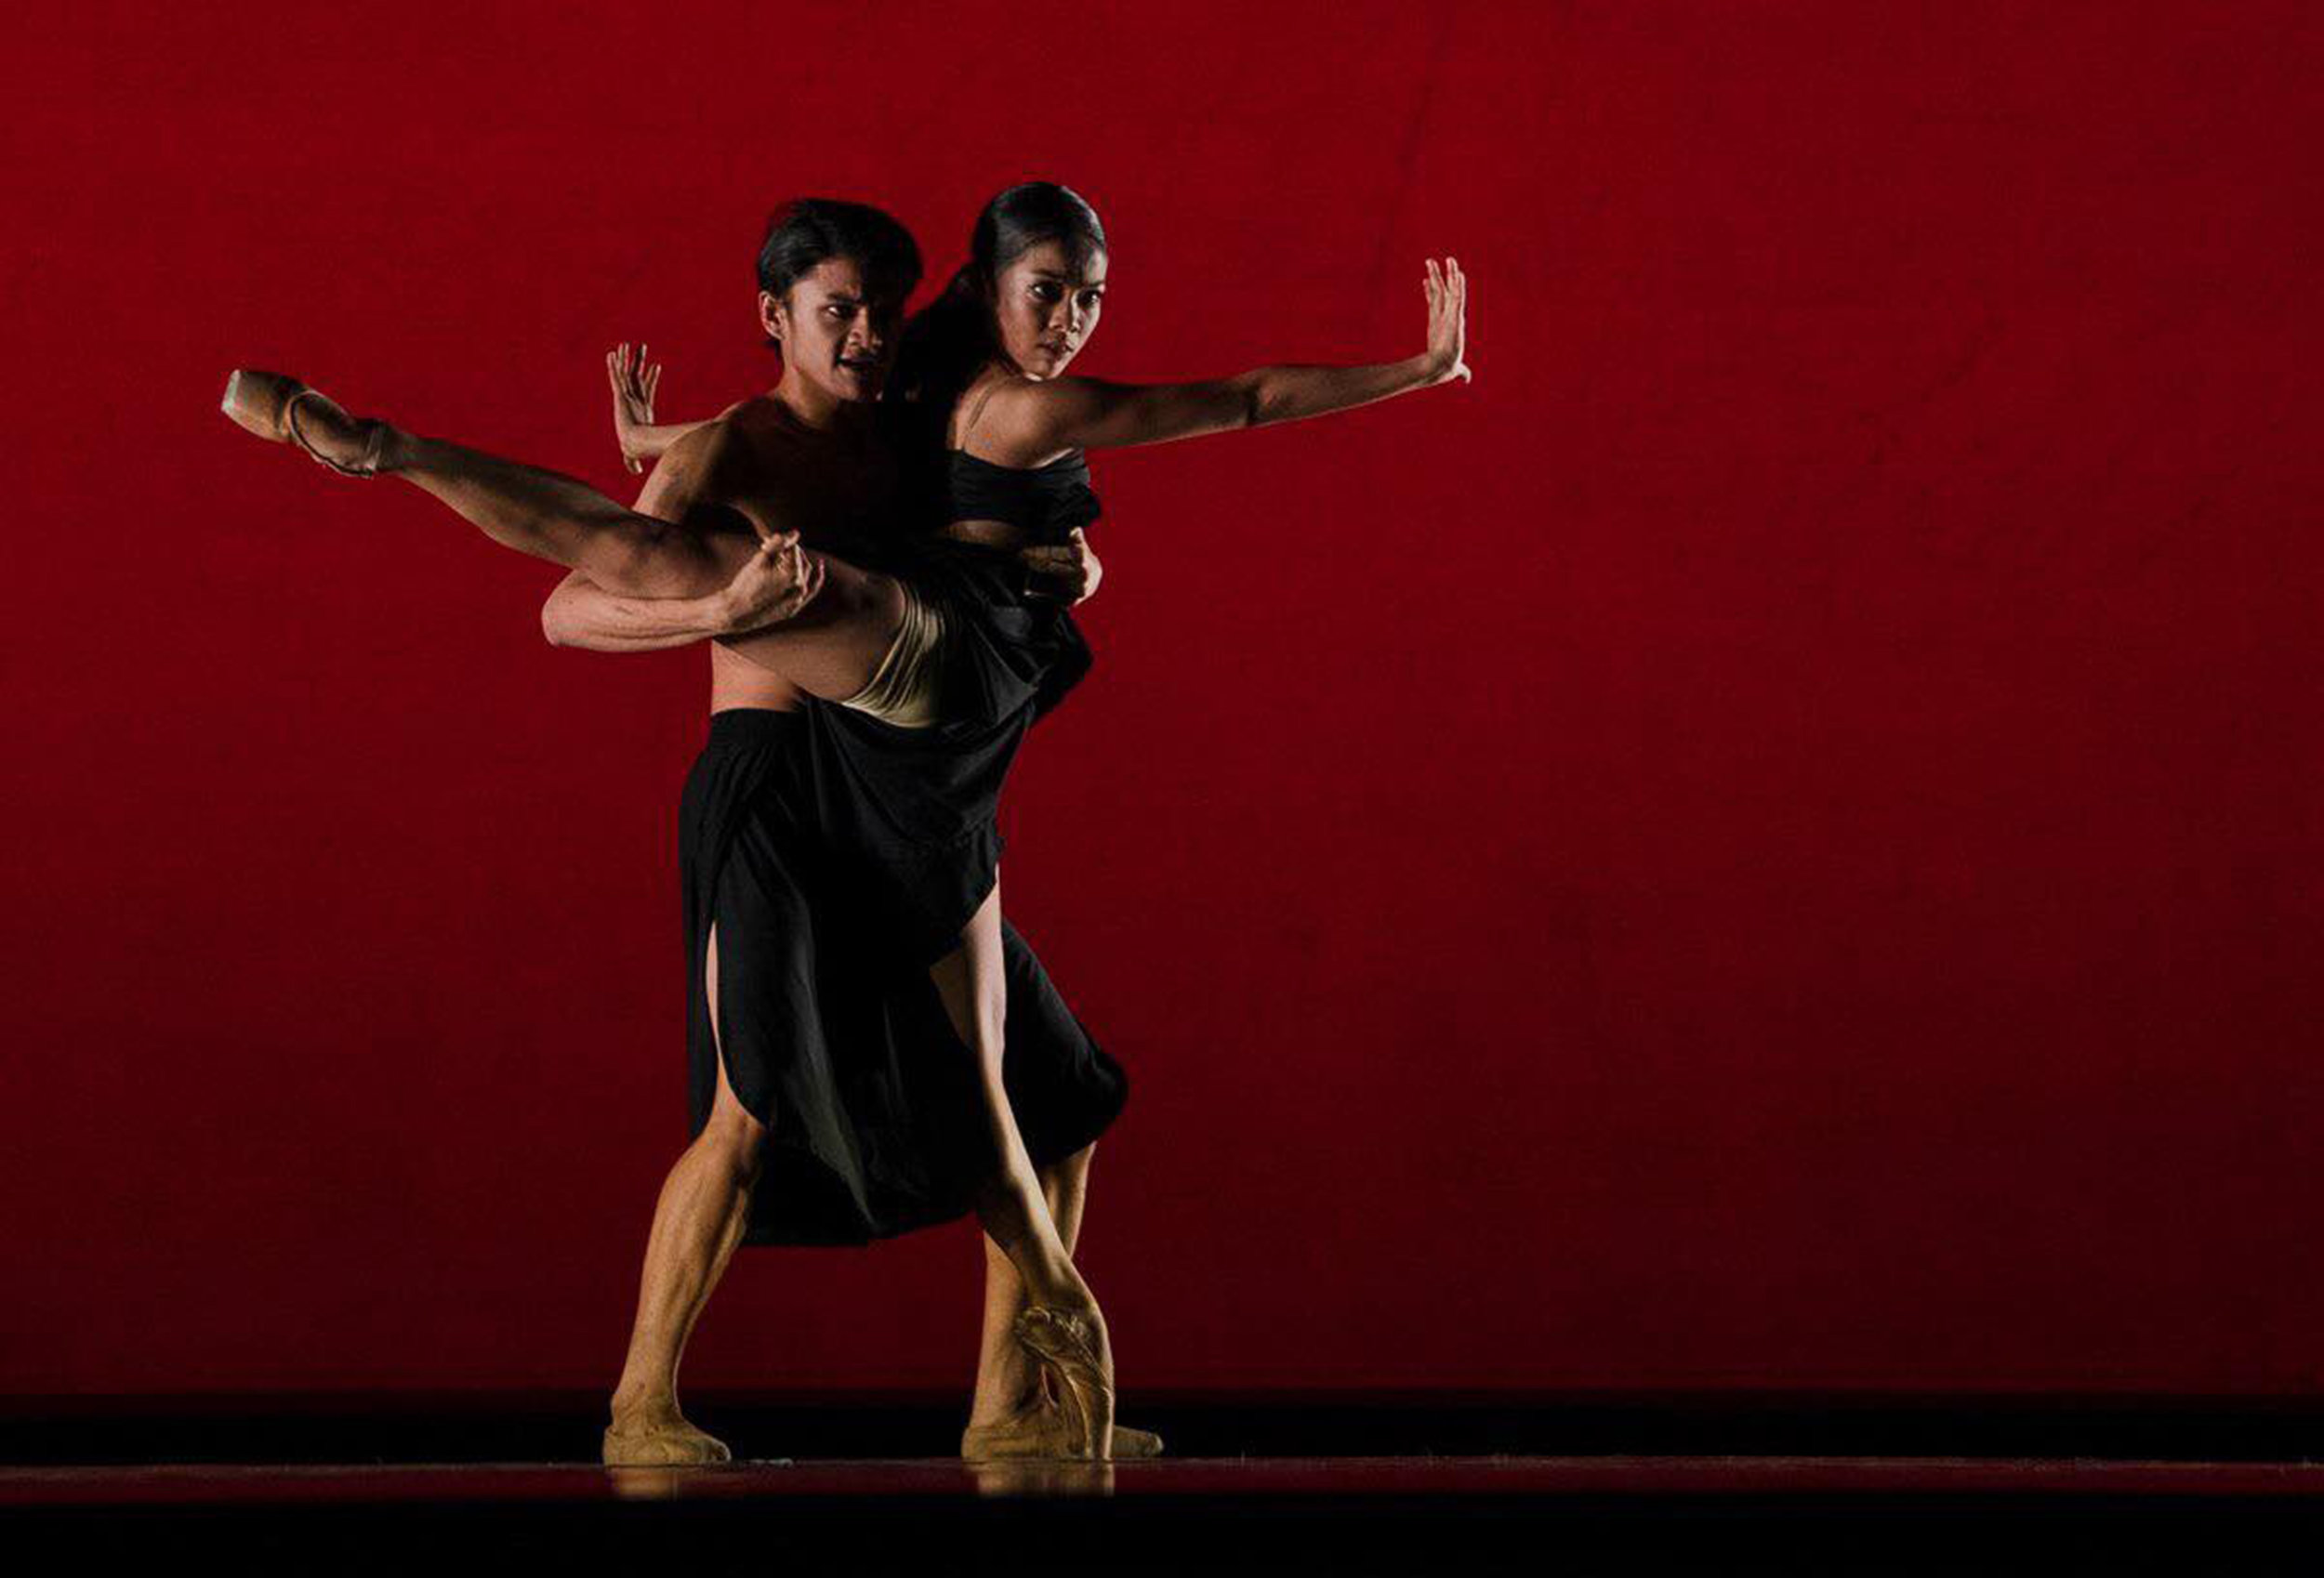 Nicole Barroso and Joshua Enciso's powerful performance of    Fuga    at the USA International Ballet Competition is said to have brought the house down in Jackson, Mississippi. Photo by Richard Finkelstein, courtesy of USA IBC